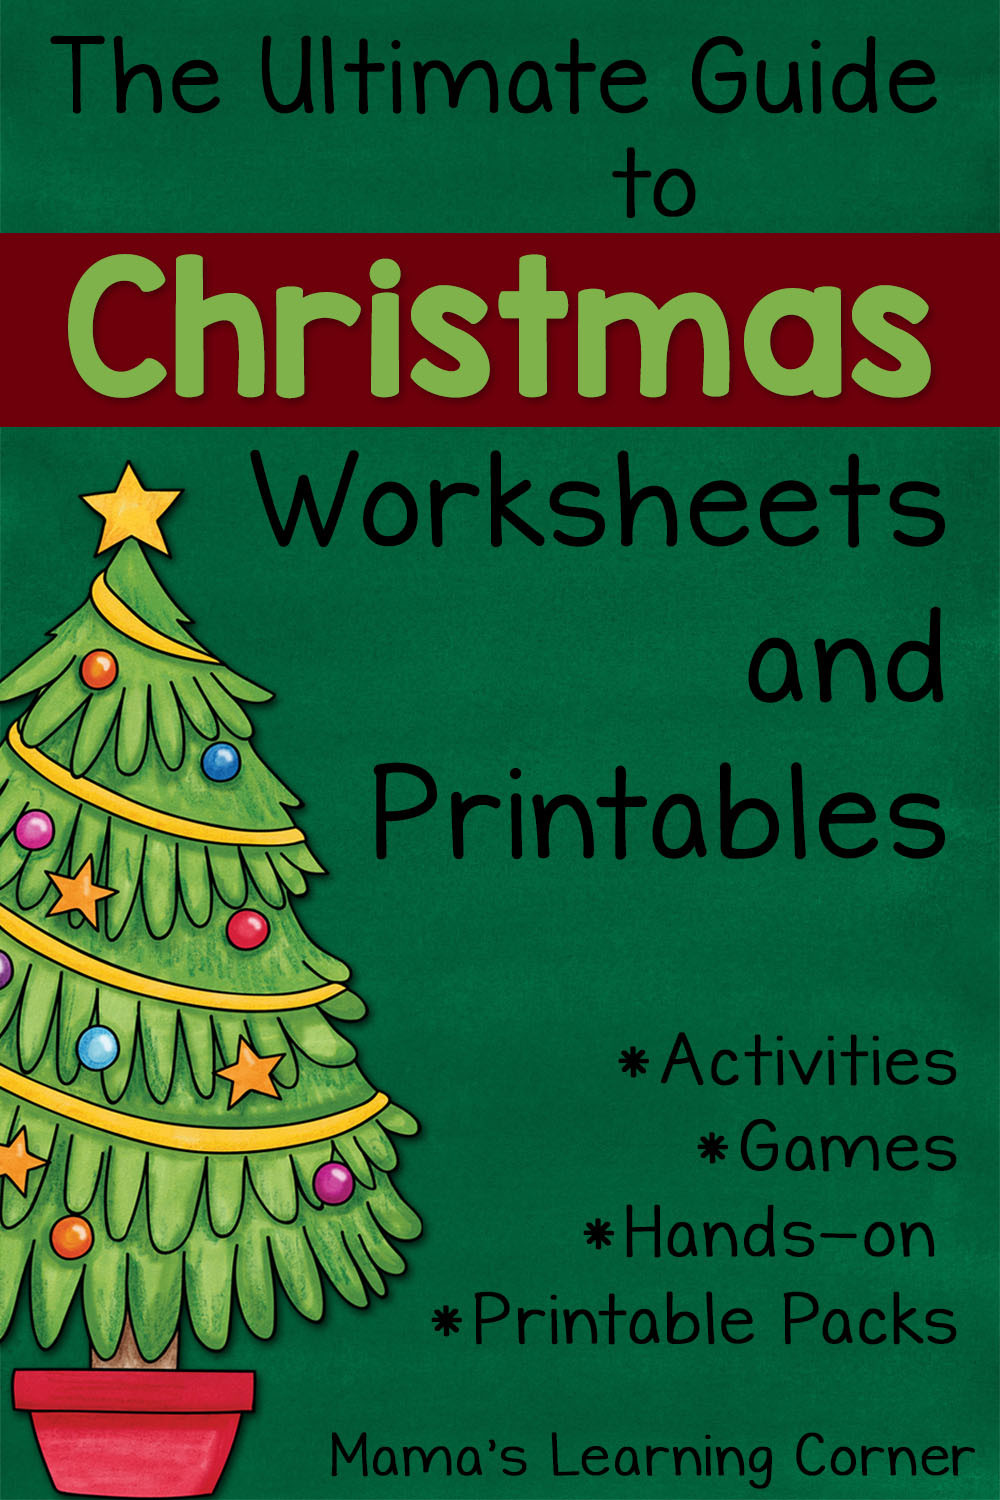 3rd Grade Christmas Worksheets the Ultimate Guide to Christmas Worksheets and Printables